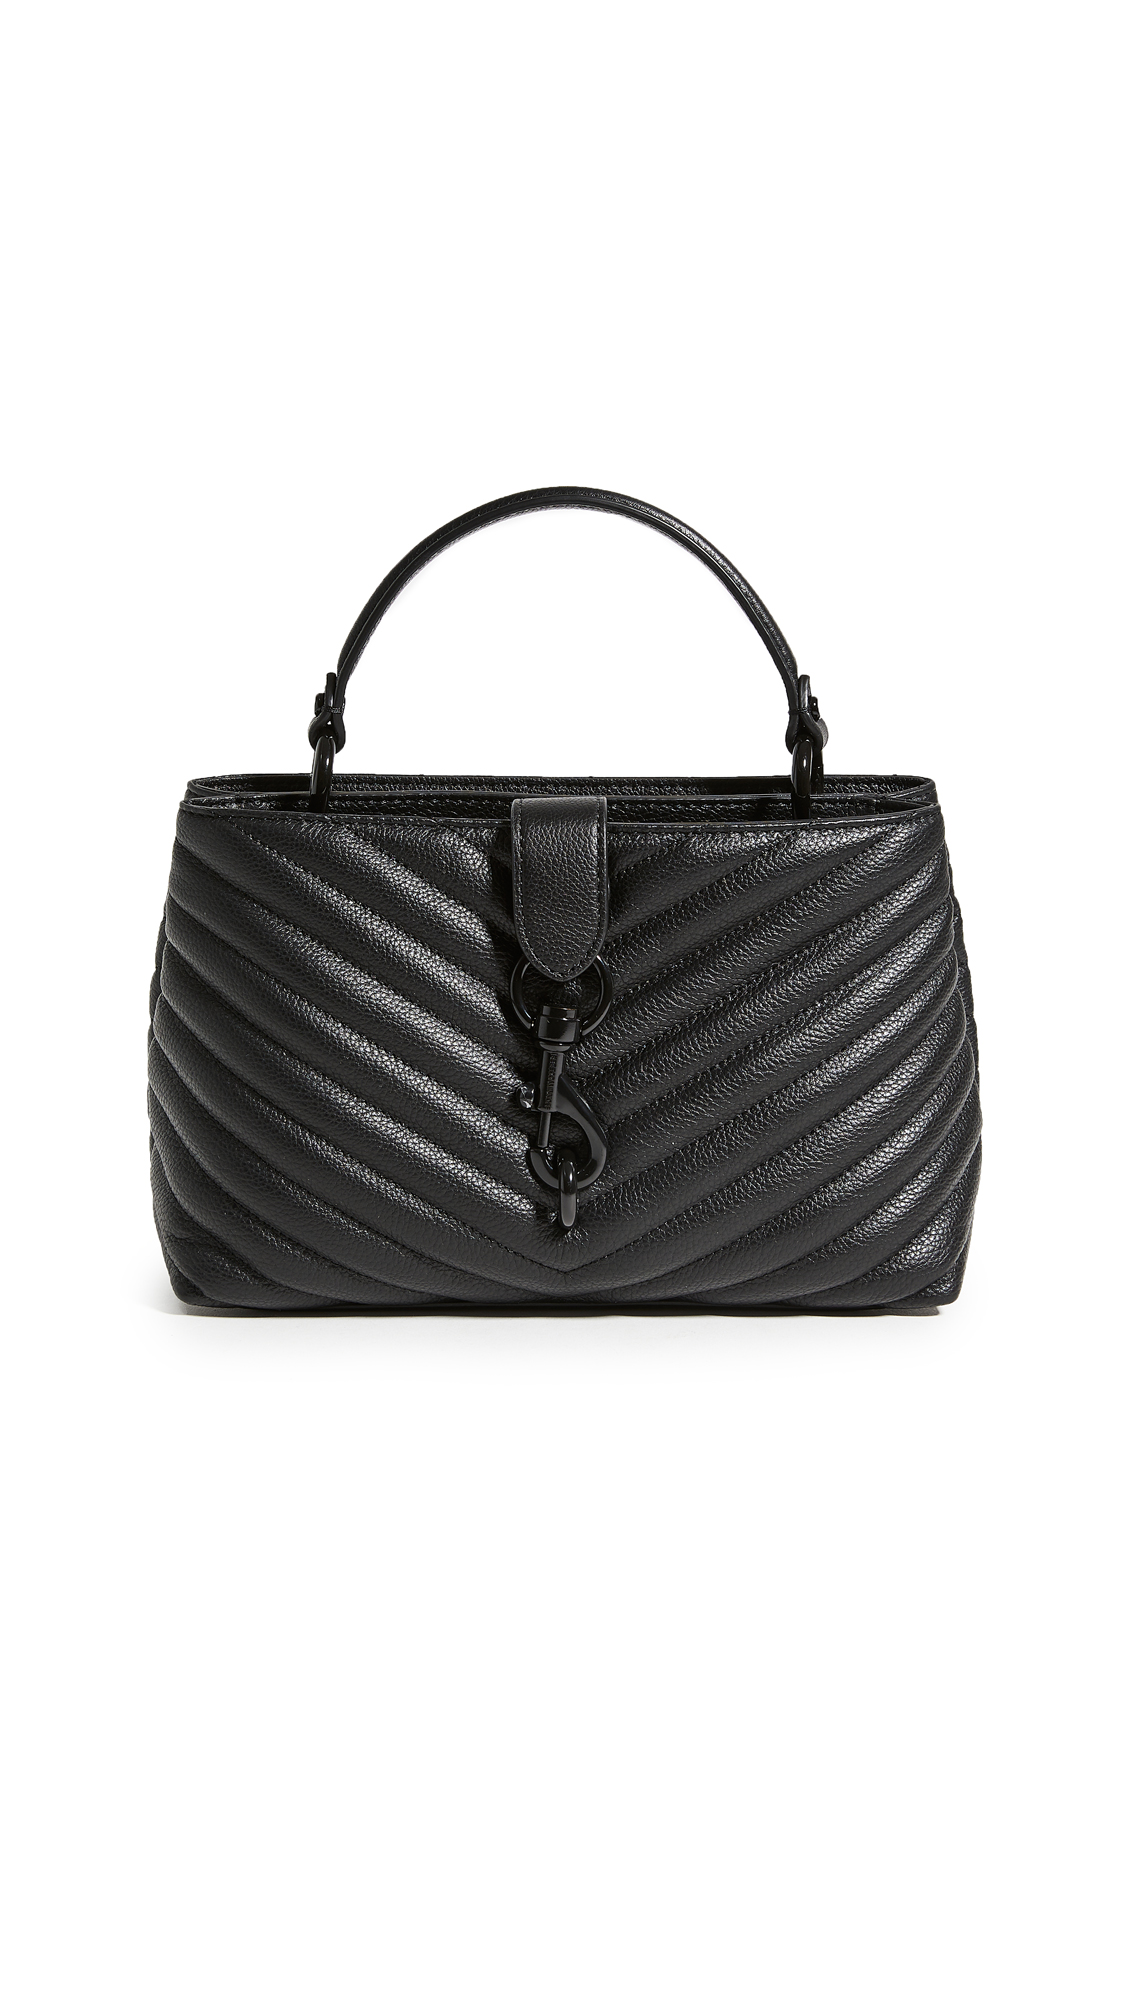 Rebecca Minkoff EDIE TOP HANDLE SATCHEL